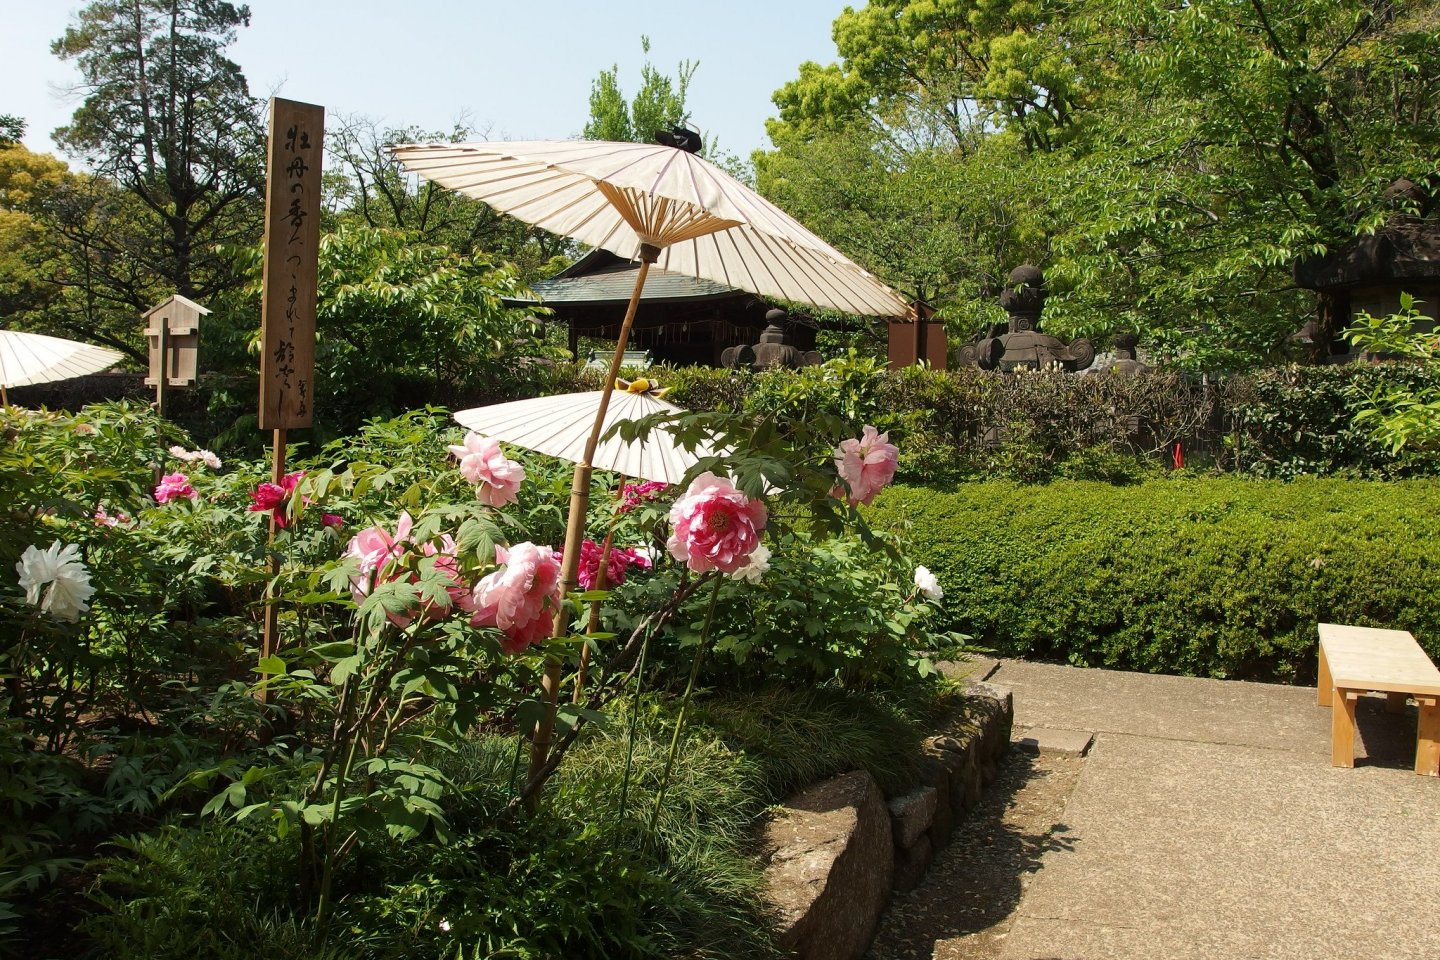 Ueno Toshogu Shrine\'s peony garden serves as a celebration of the friendship between China and Japan